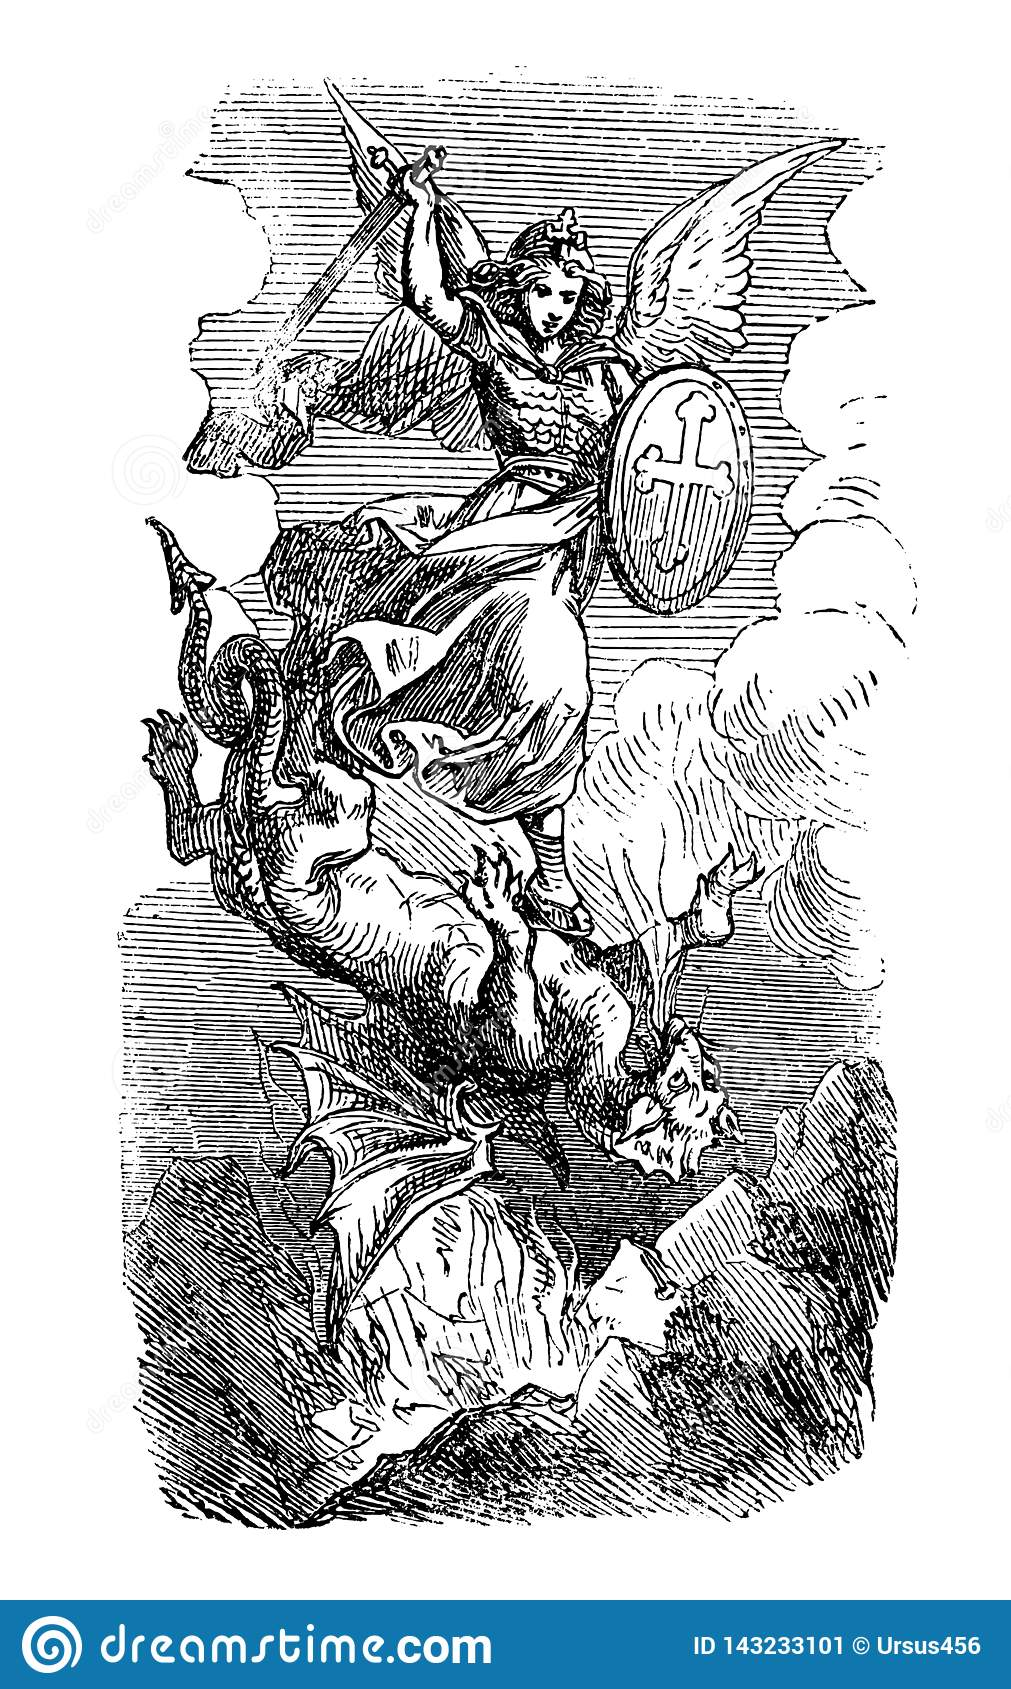 Vintage Drawing Of Biblical Archangel Michael Fighting With